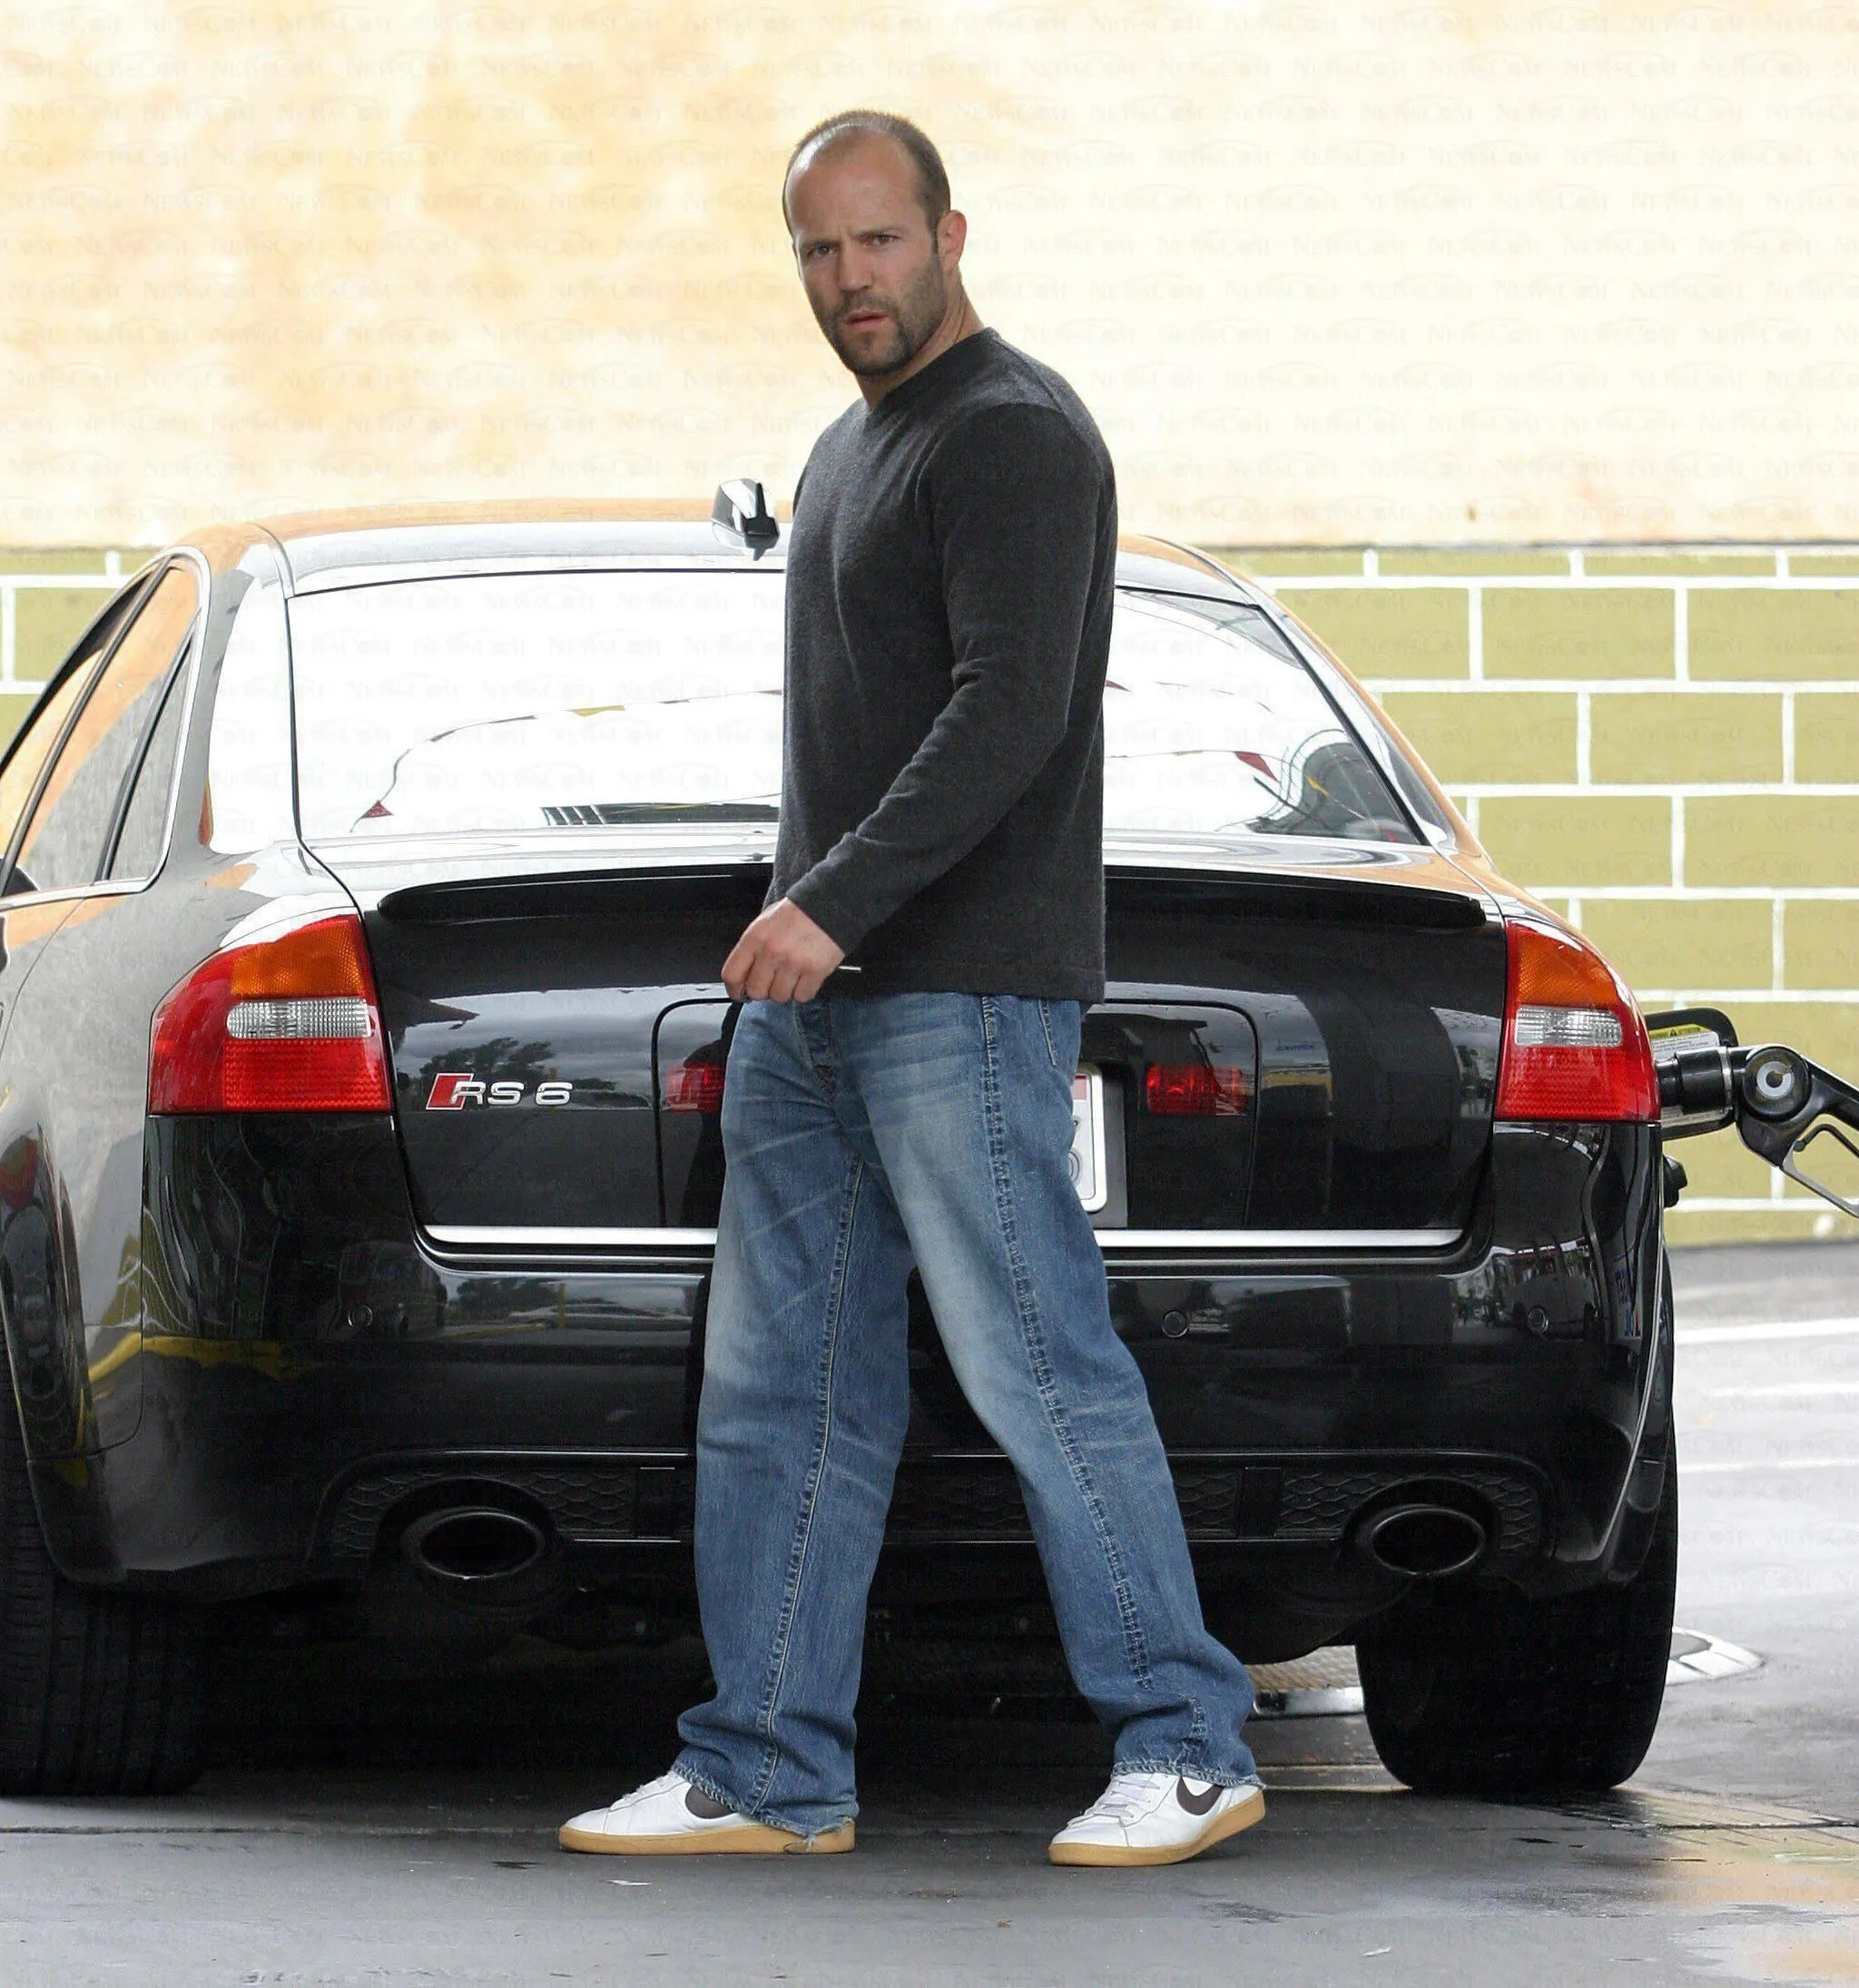 Jason Statham Transporter 1 : 10 Cars Jason Statham Drives In Real Life 10 He Drove In Films